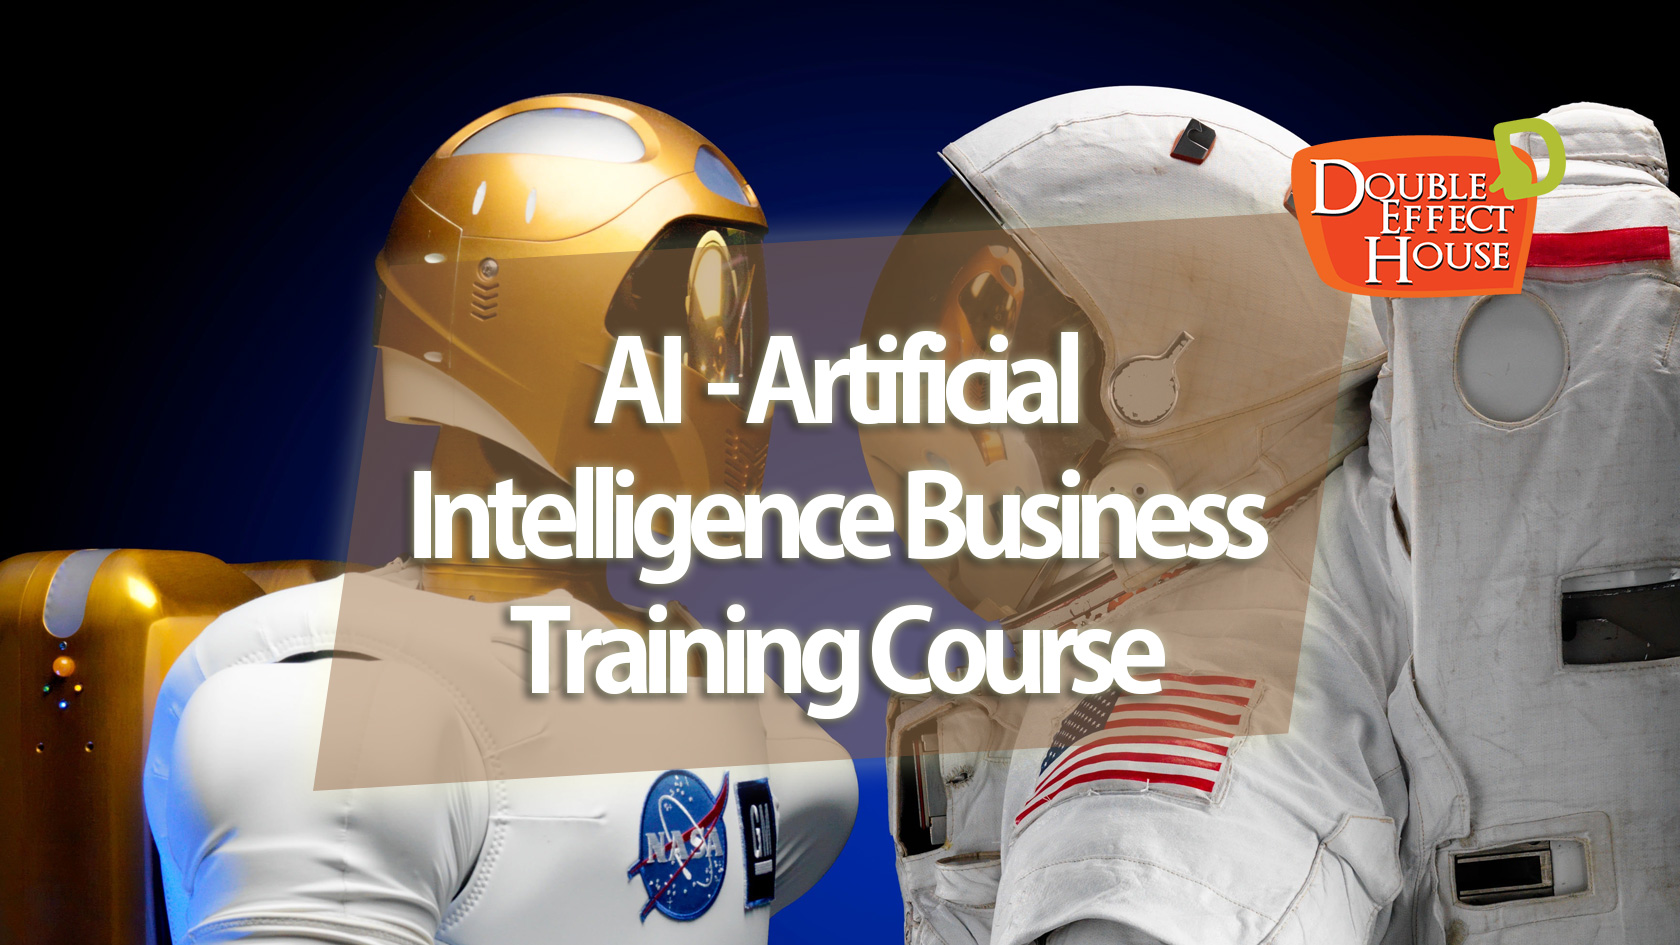 AI - Artificial Intelligence Business Training Course